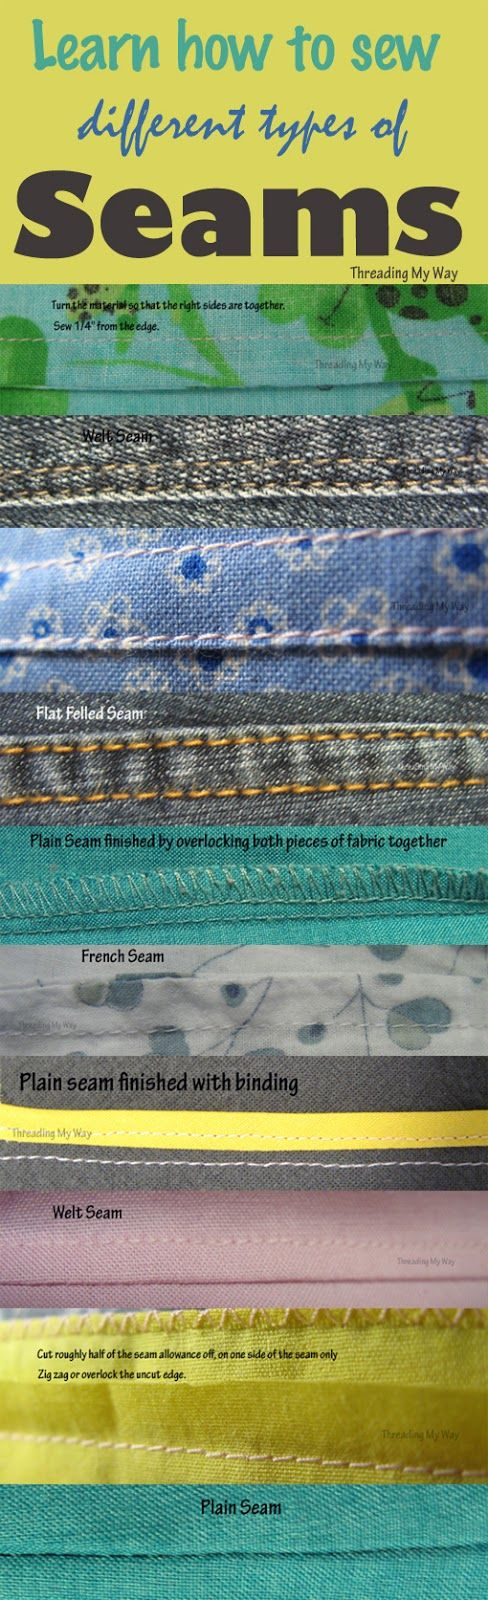 Learn how and when to sew different types of seams - plain, welt, french, flat felled ~ Threading My Way